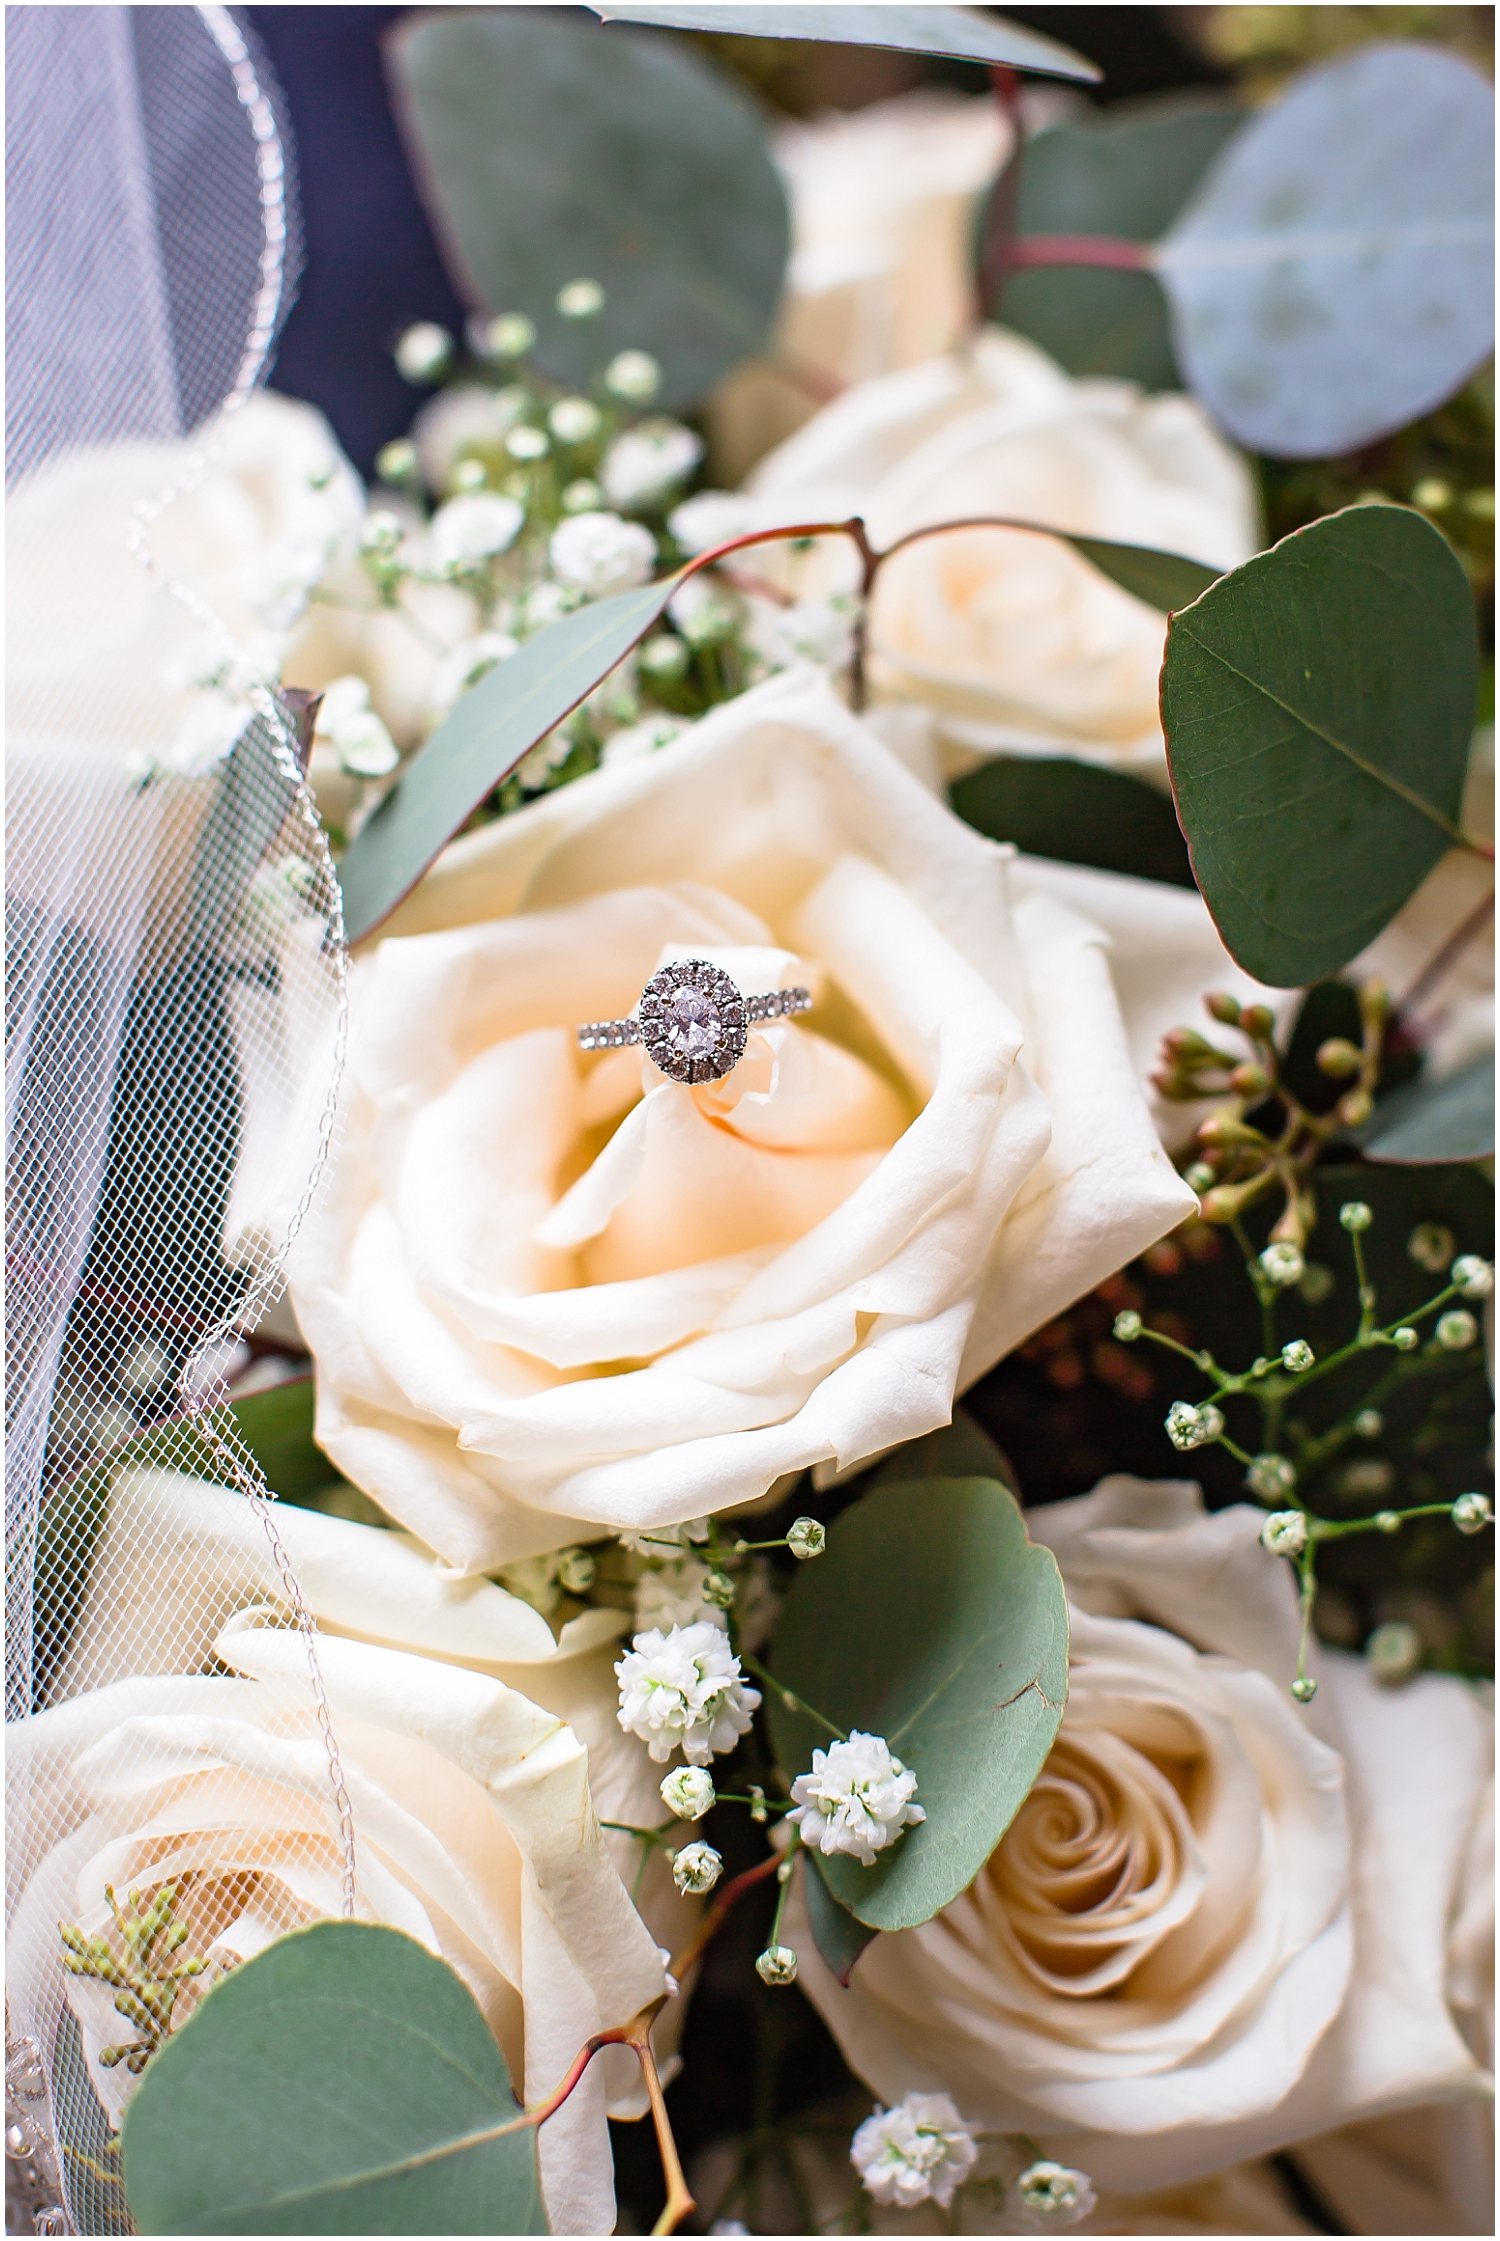 detail shot of the wedding bouquet and wedding rings